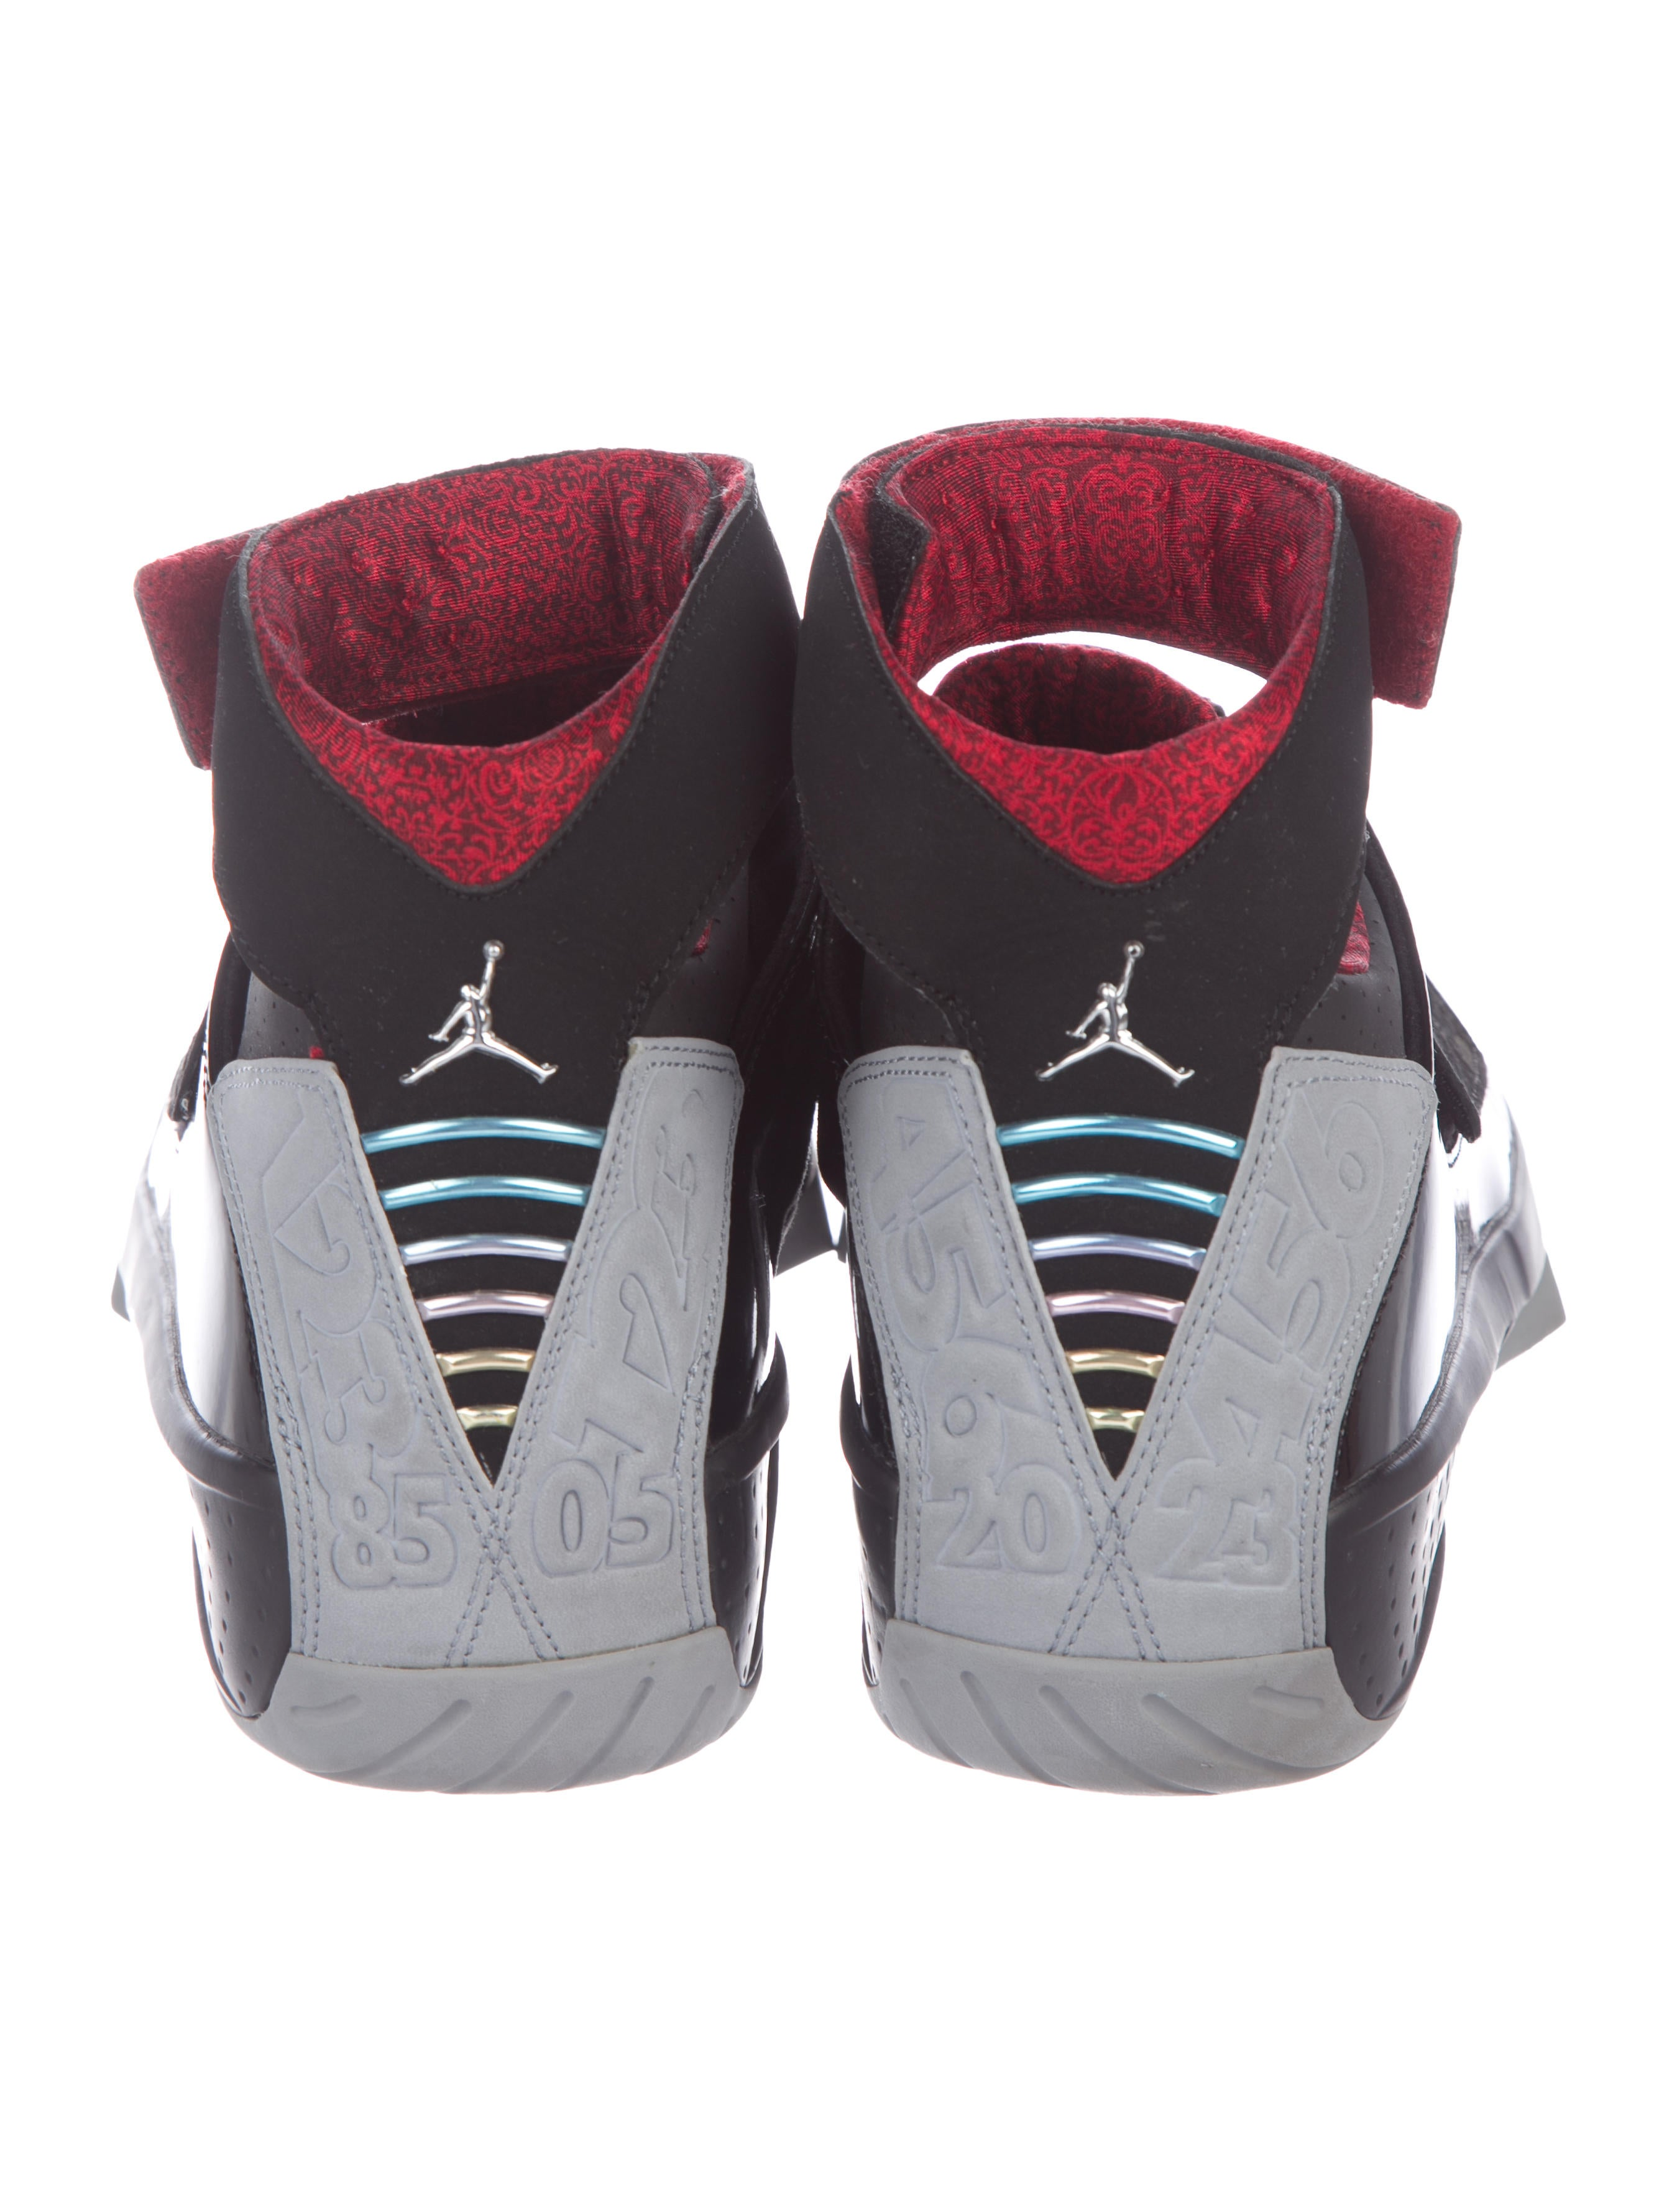 ... competitive price 3664e fd047 20 Stealth Sneakers  first rate f474c  24e77 Jordan Air Retro XX Stealth Mens Shoes BlackStealth-Varsity ... a21cb83614